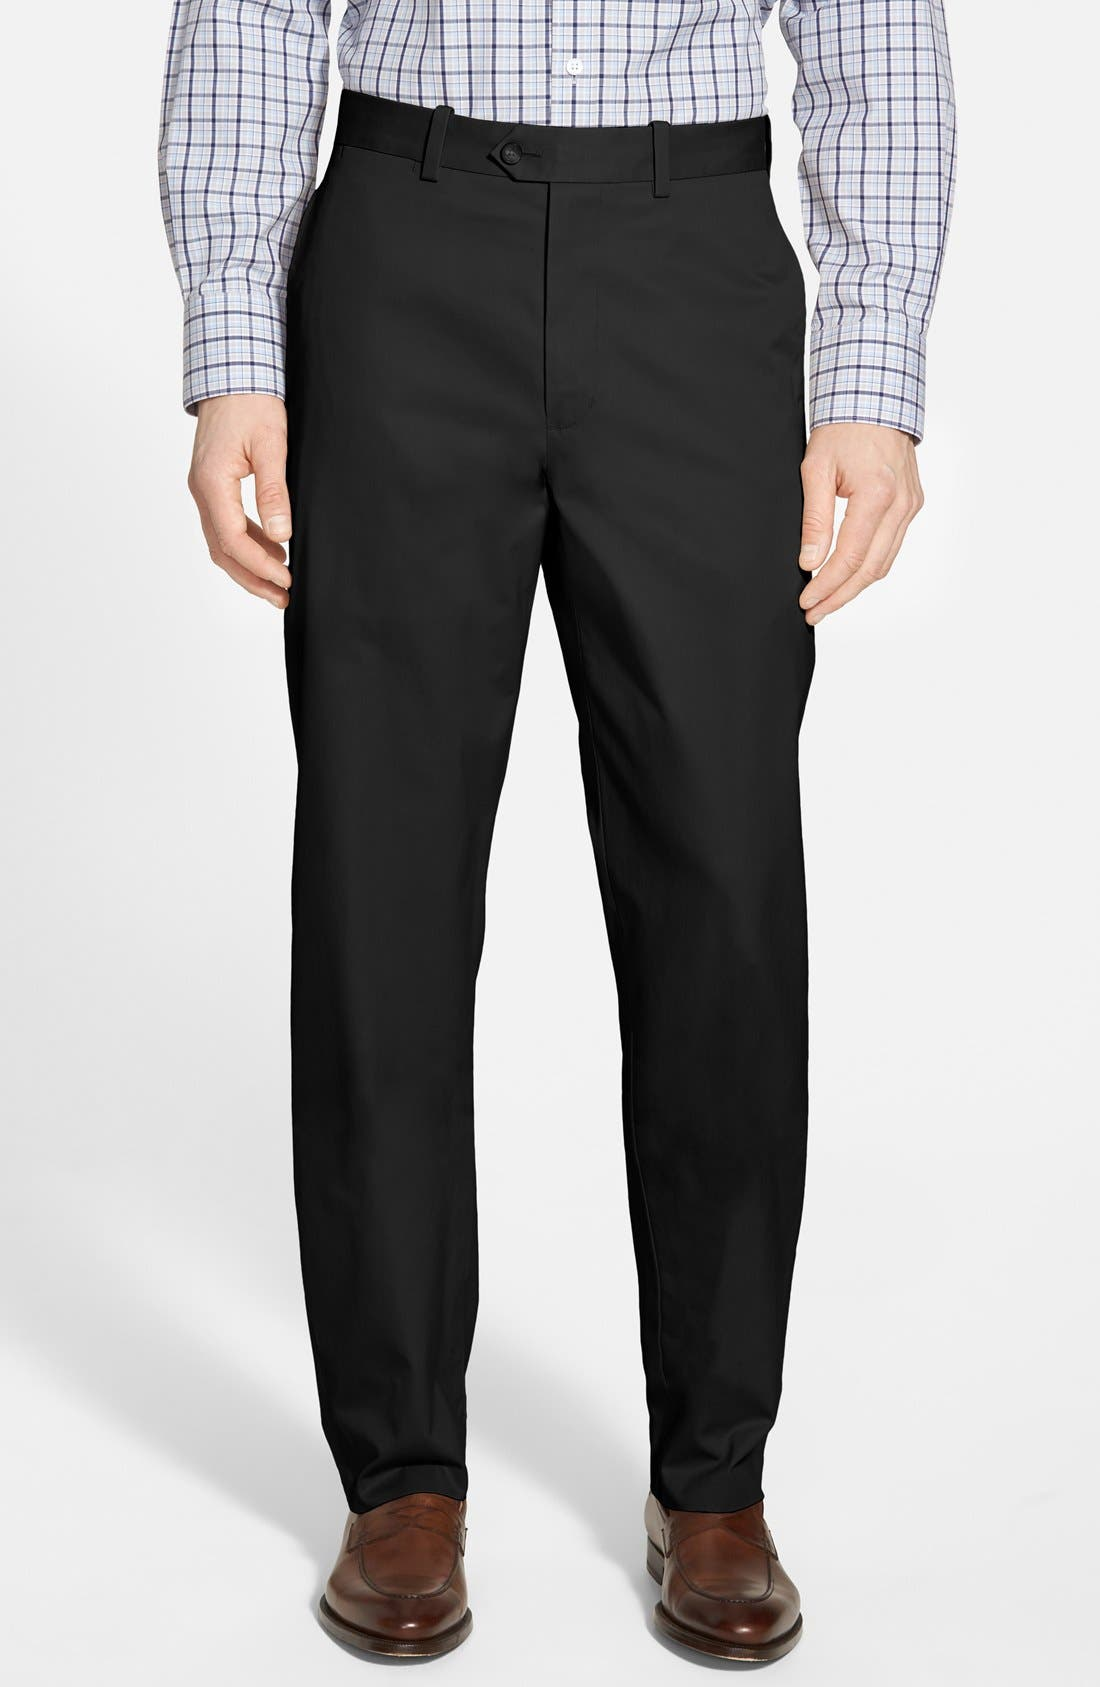 Alternate Image 1 Selected - John W. Nordstrom® Smartcare™ Flat Front Supima® Cotton Pants